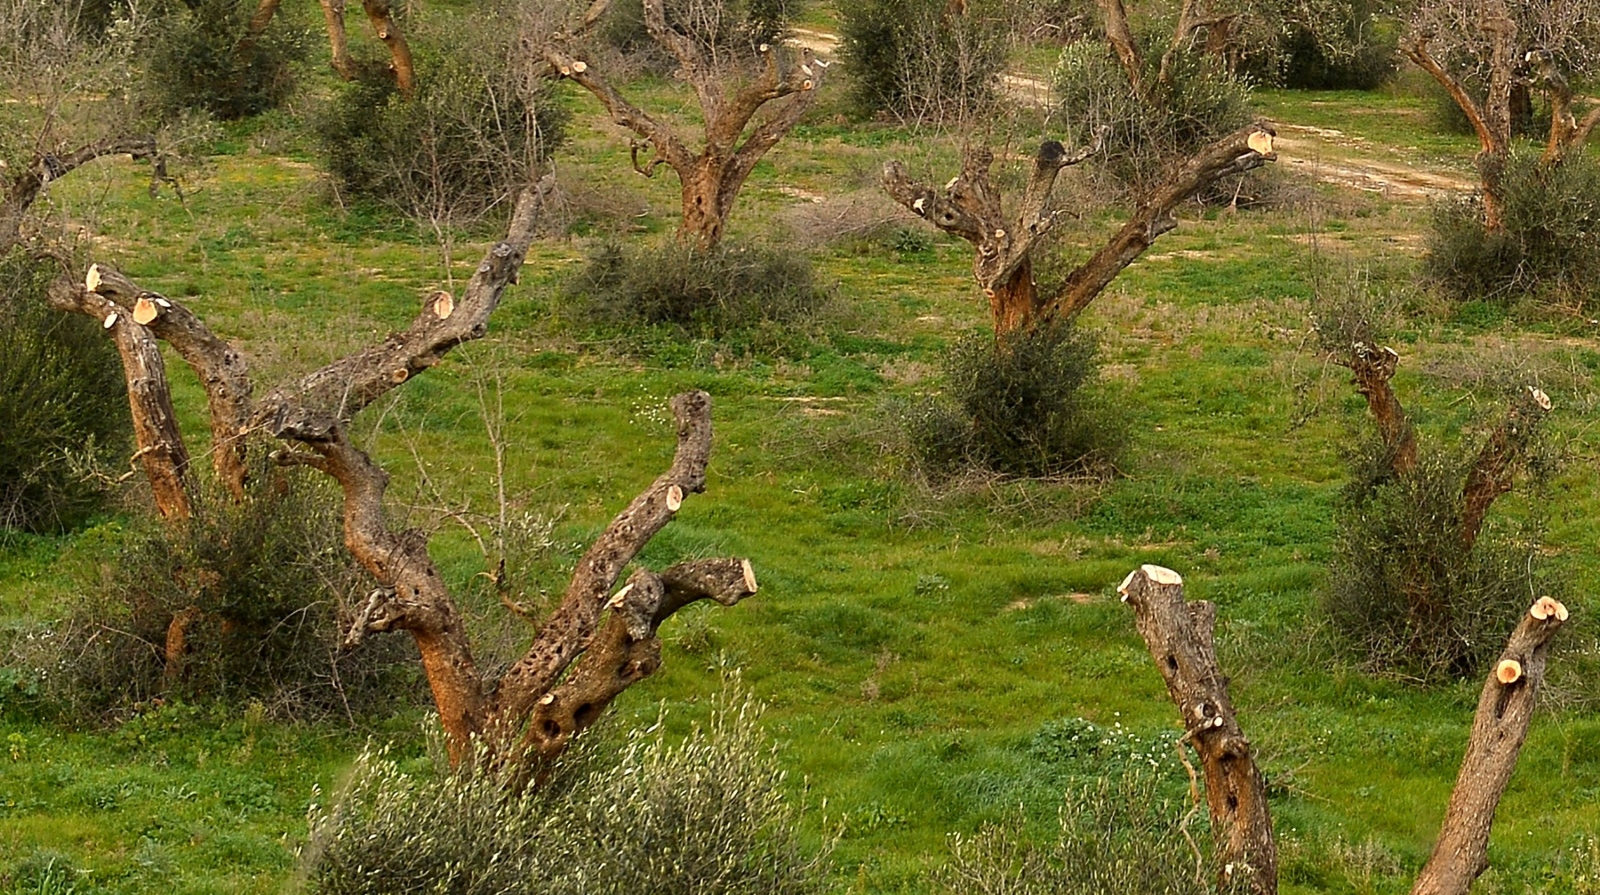 Olive trees infected by Xylella Fastidiosa in Gallipoli, Italy, in February 2016